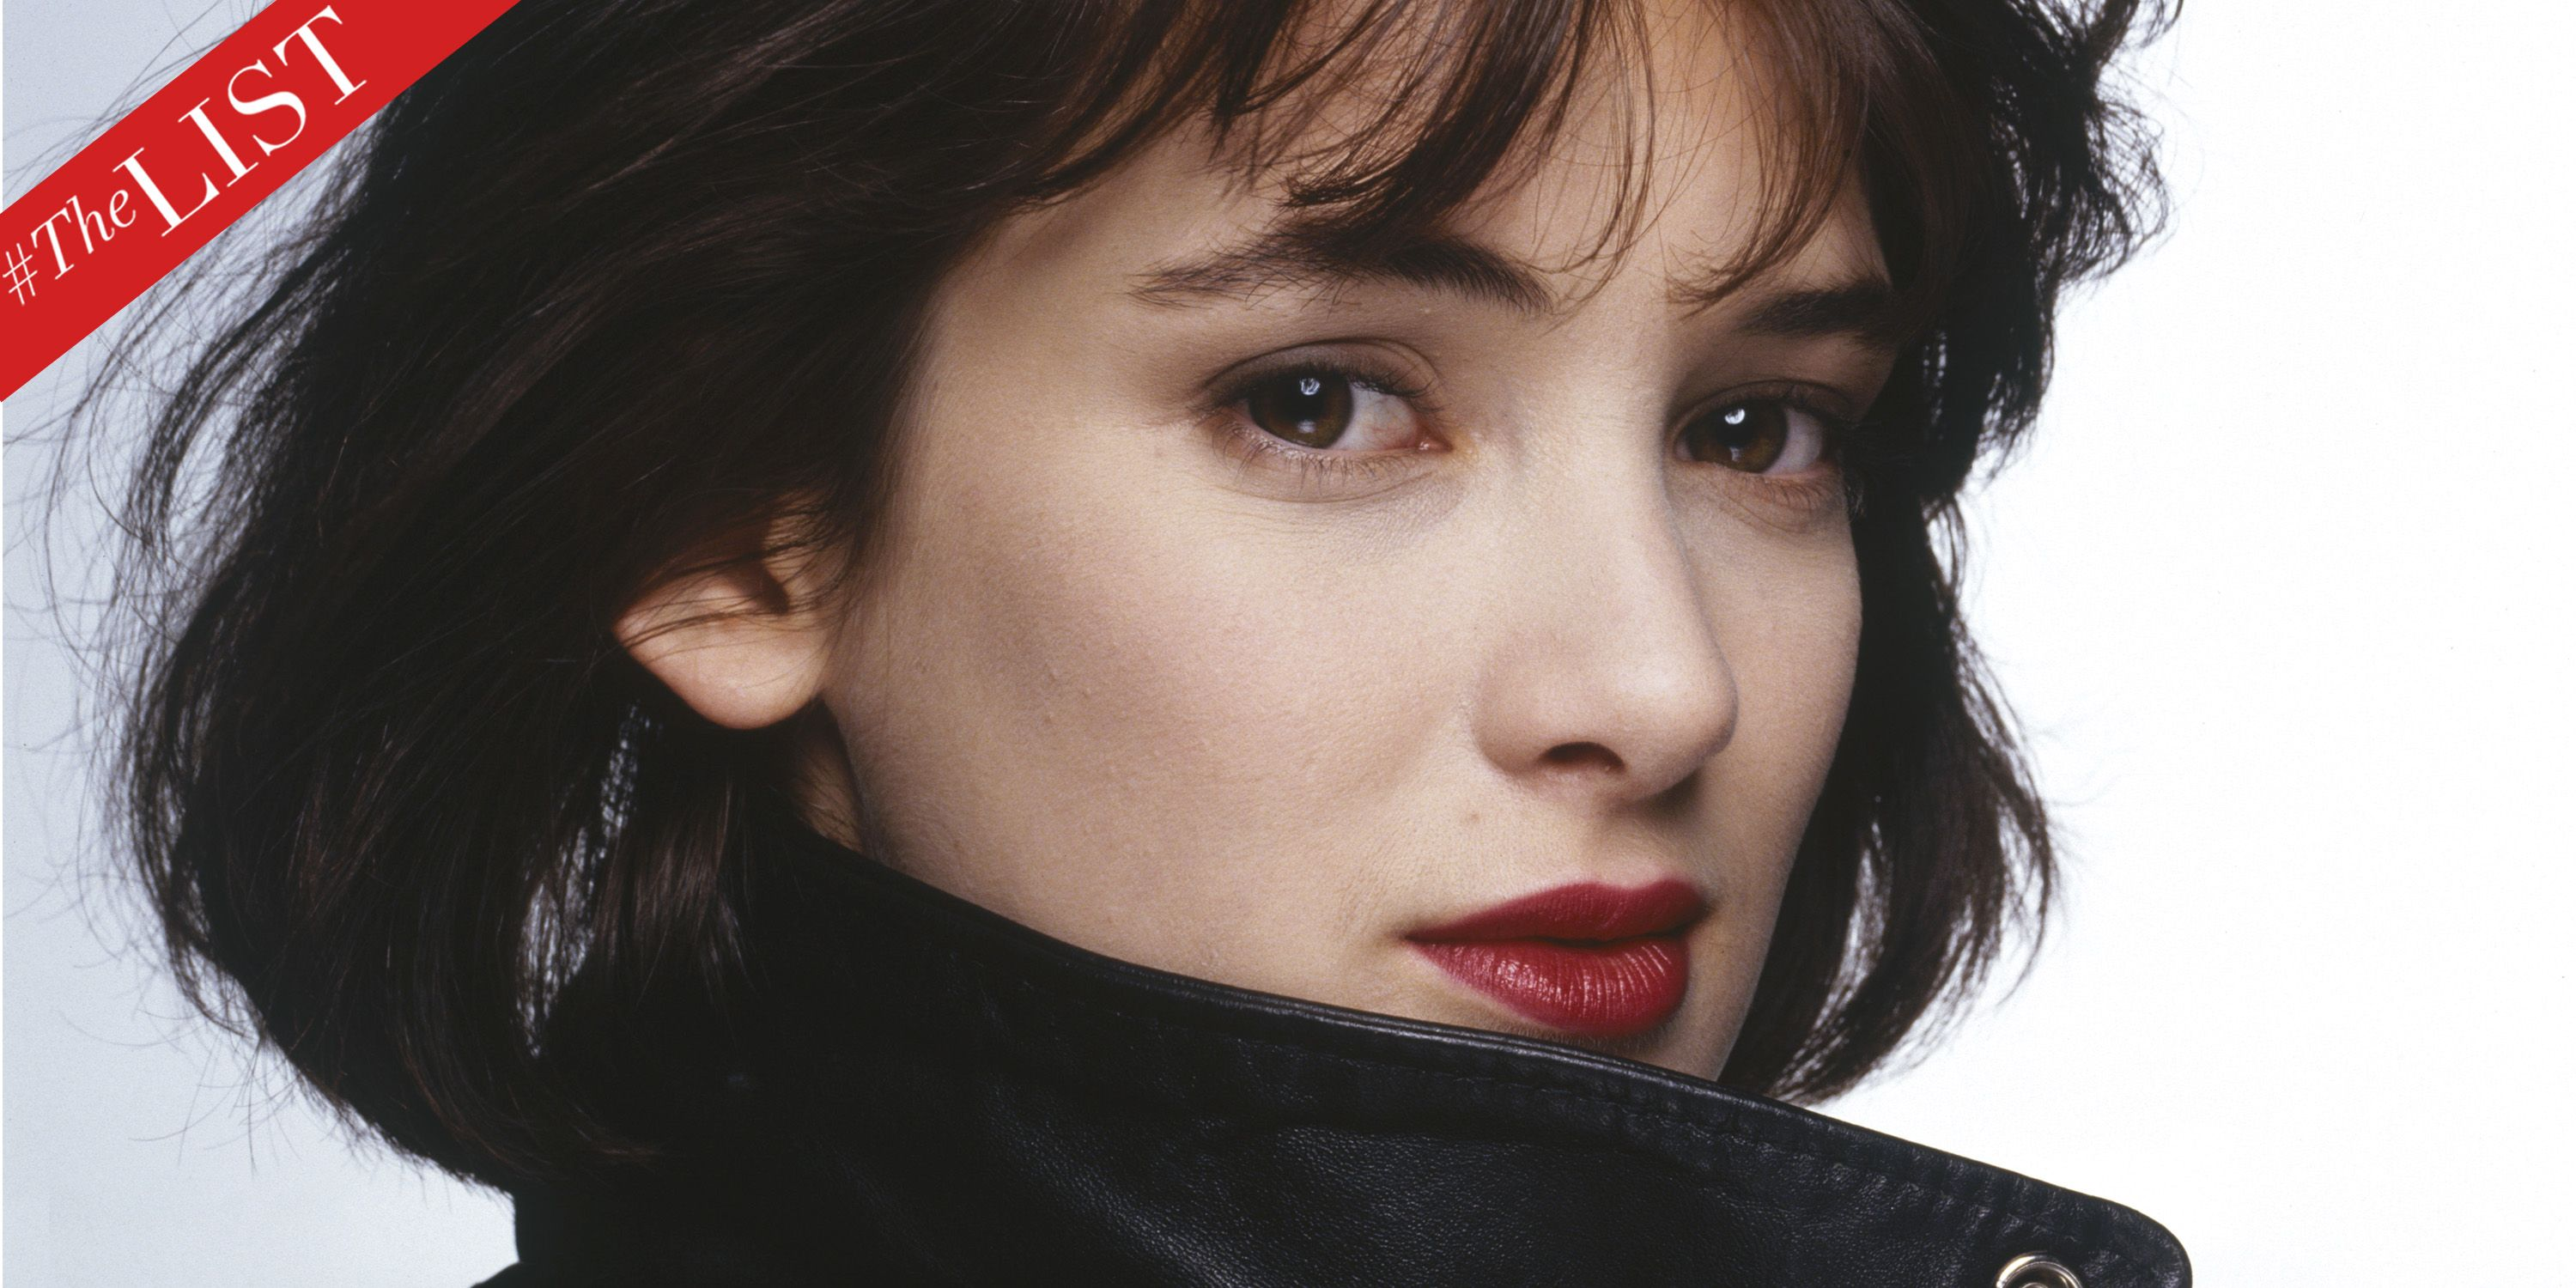 Winona Ryder Best Hair And Makeup Looks Winona Ryder Old Vintage Photos